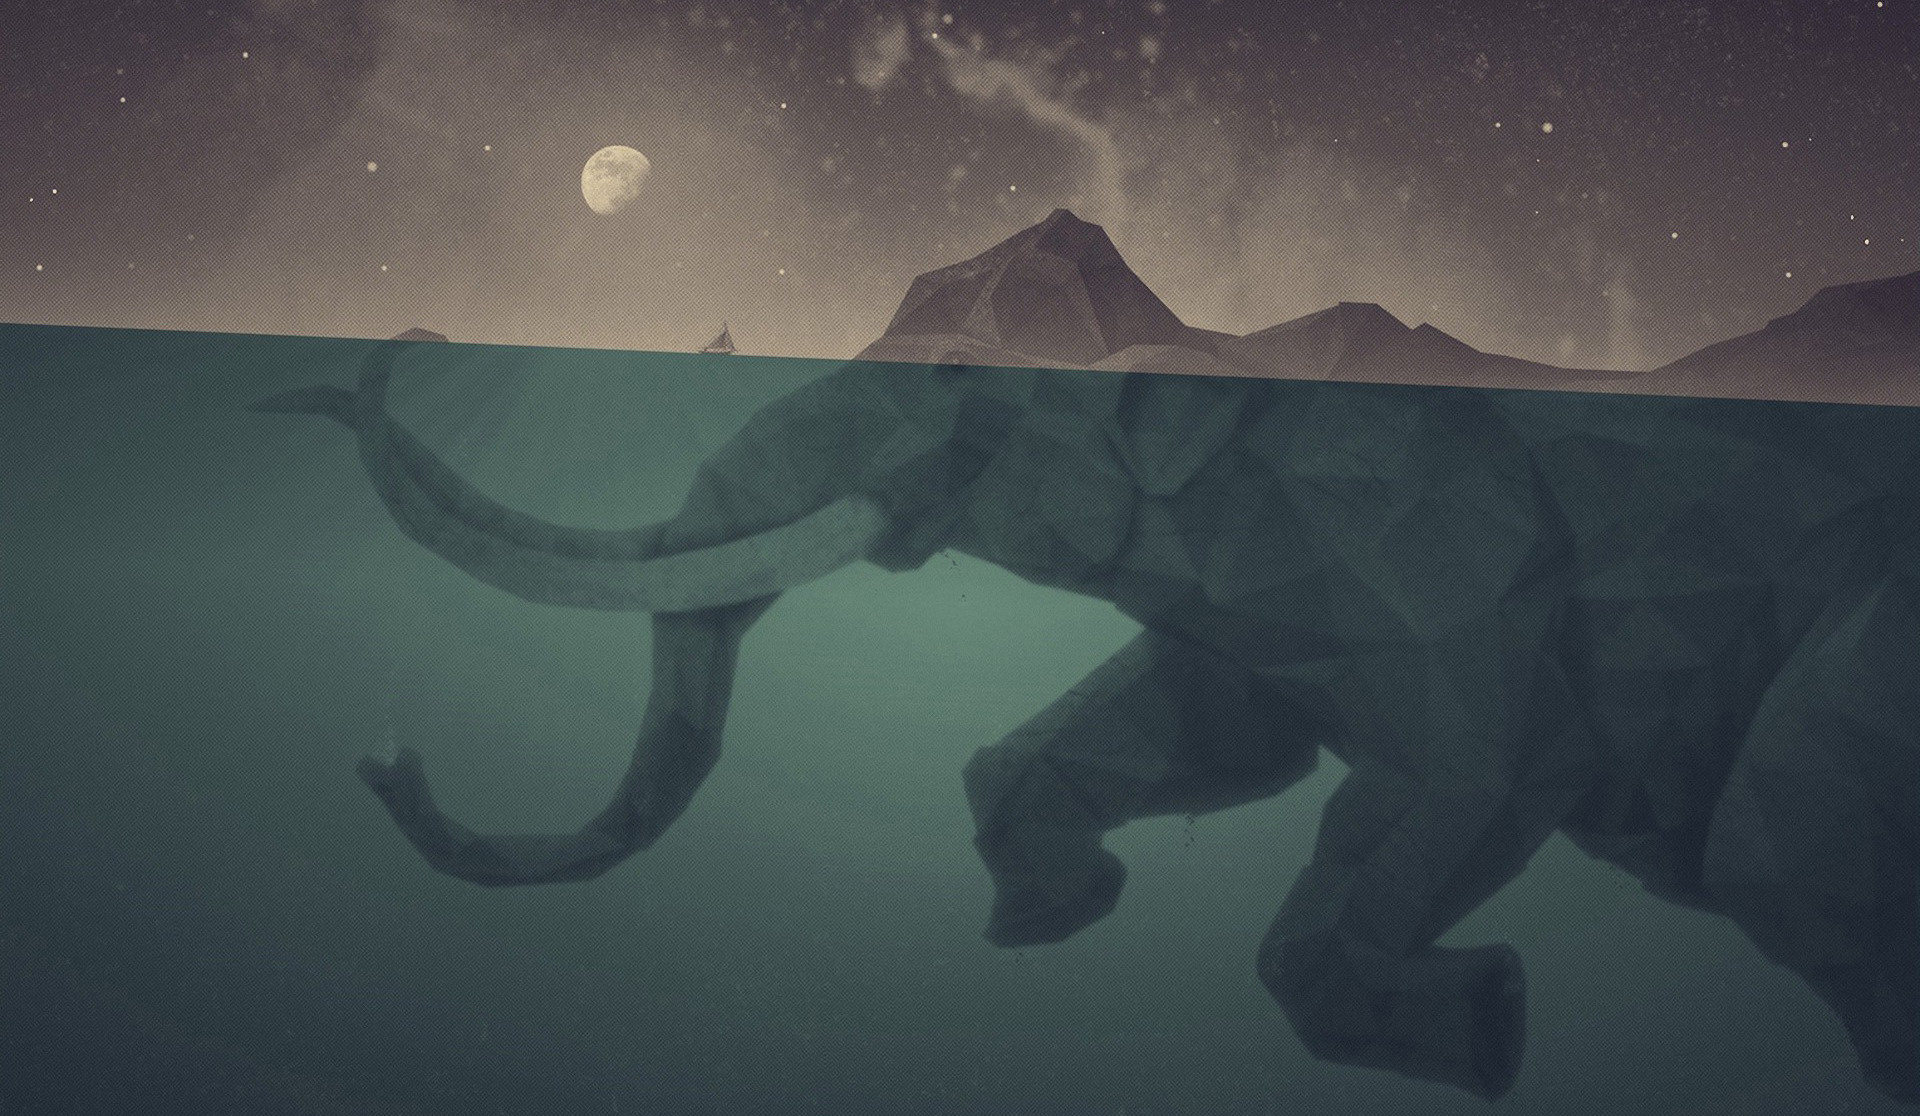 Abstract Moon Fantasy Art Islands Elephants Underwater. Abstract  Minimalistic Waves Coffee Solid Simplistic Simple The Great Wave Off  Kanagawa Wallpaper HD